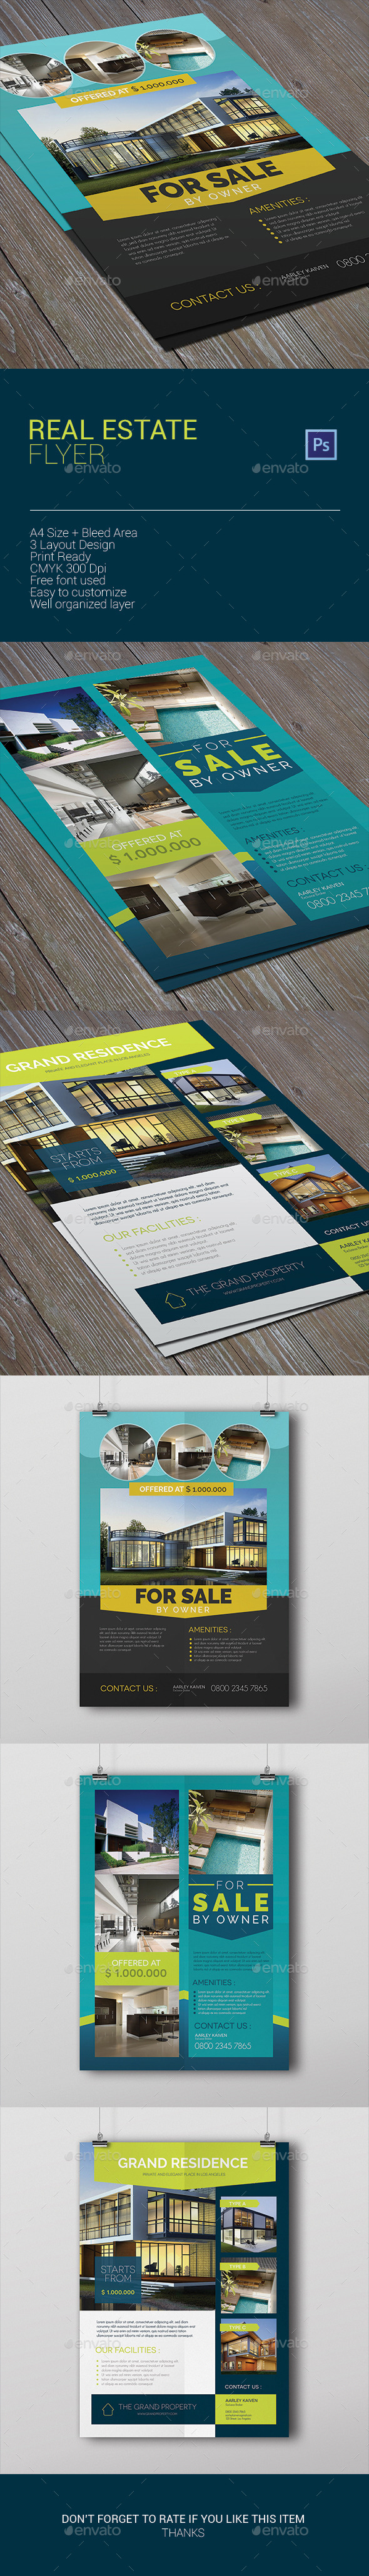 GraphicRiver Real Estate Flyer 10102945